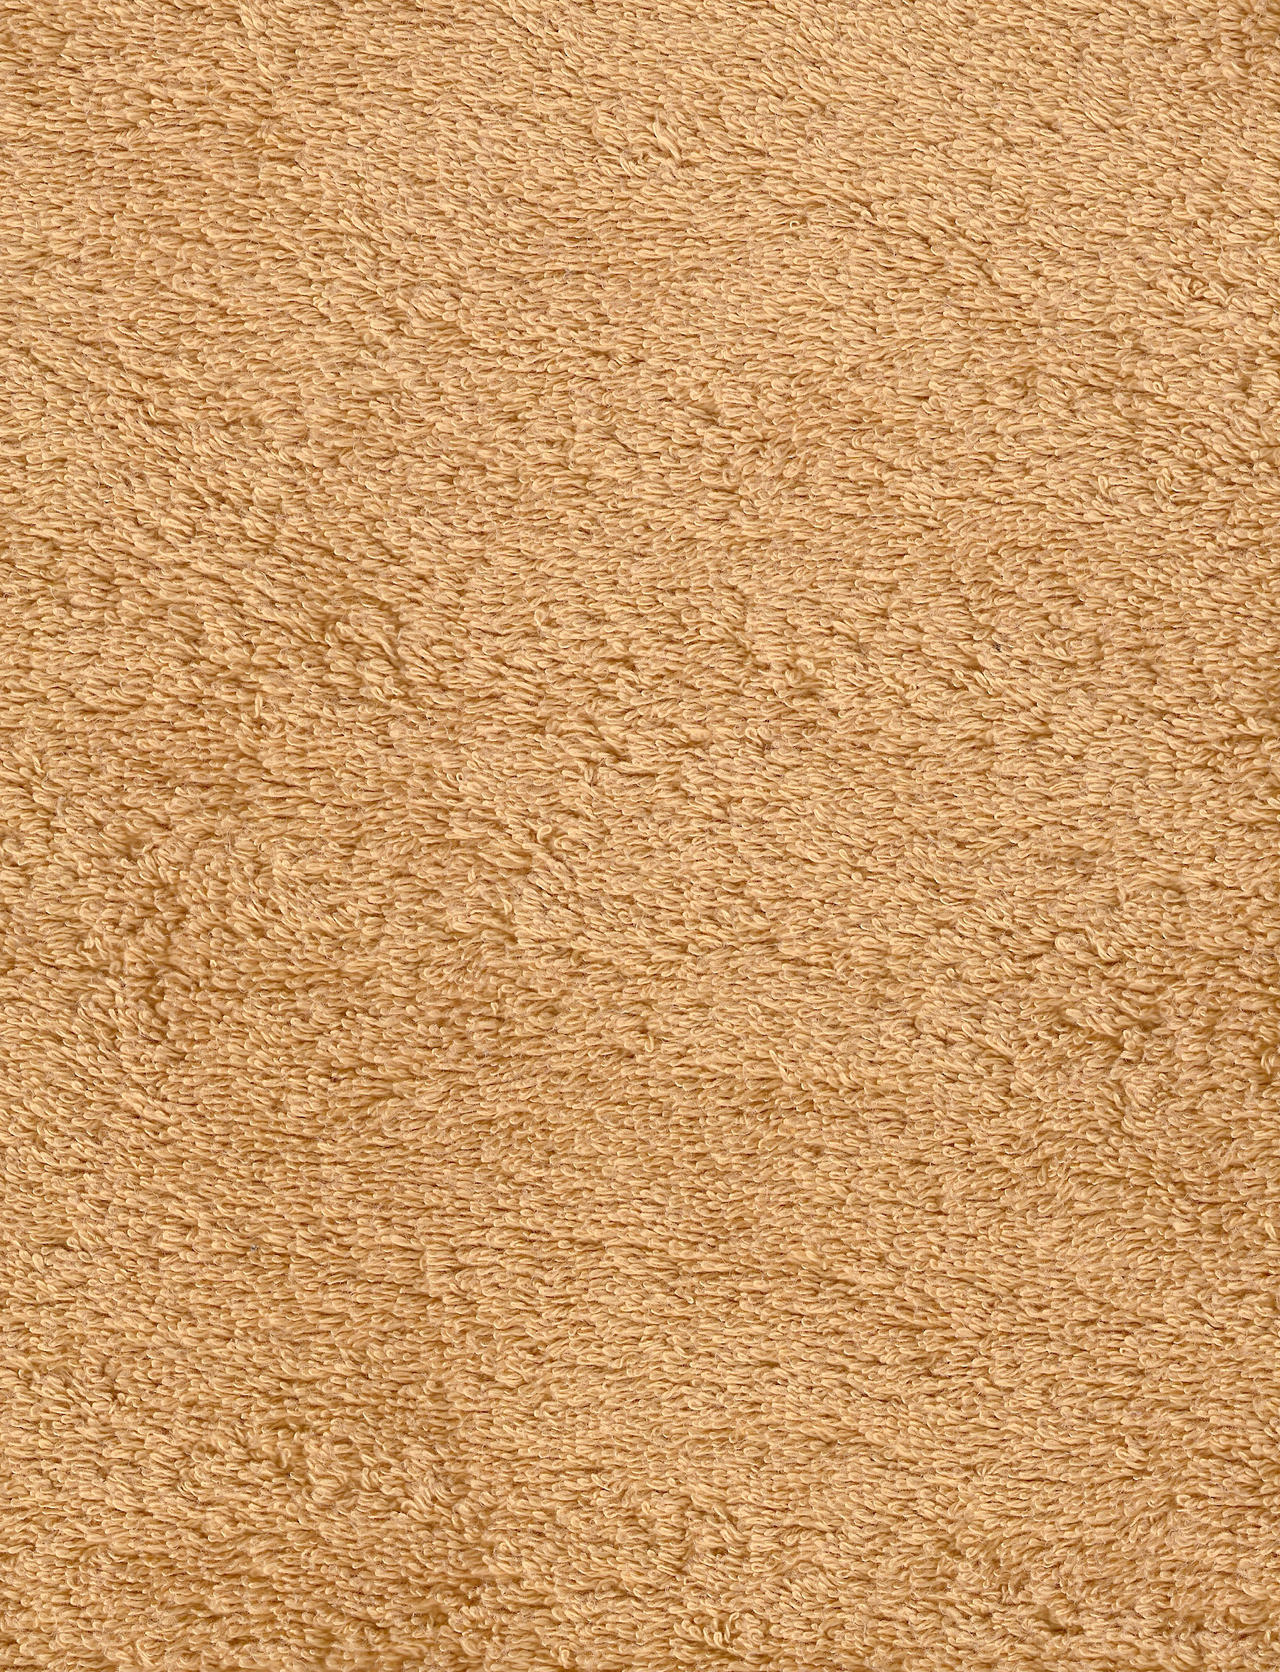 Tan Carpet Fabric Texture By Enchantedgal Stock On DeviantArt